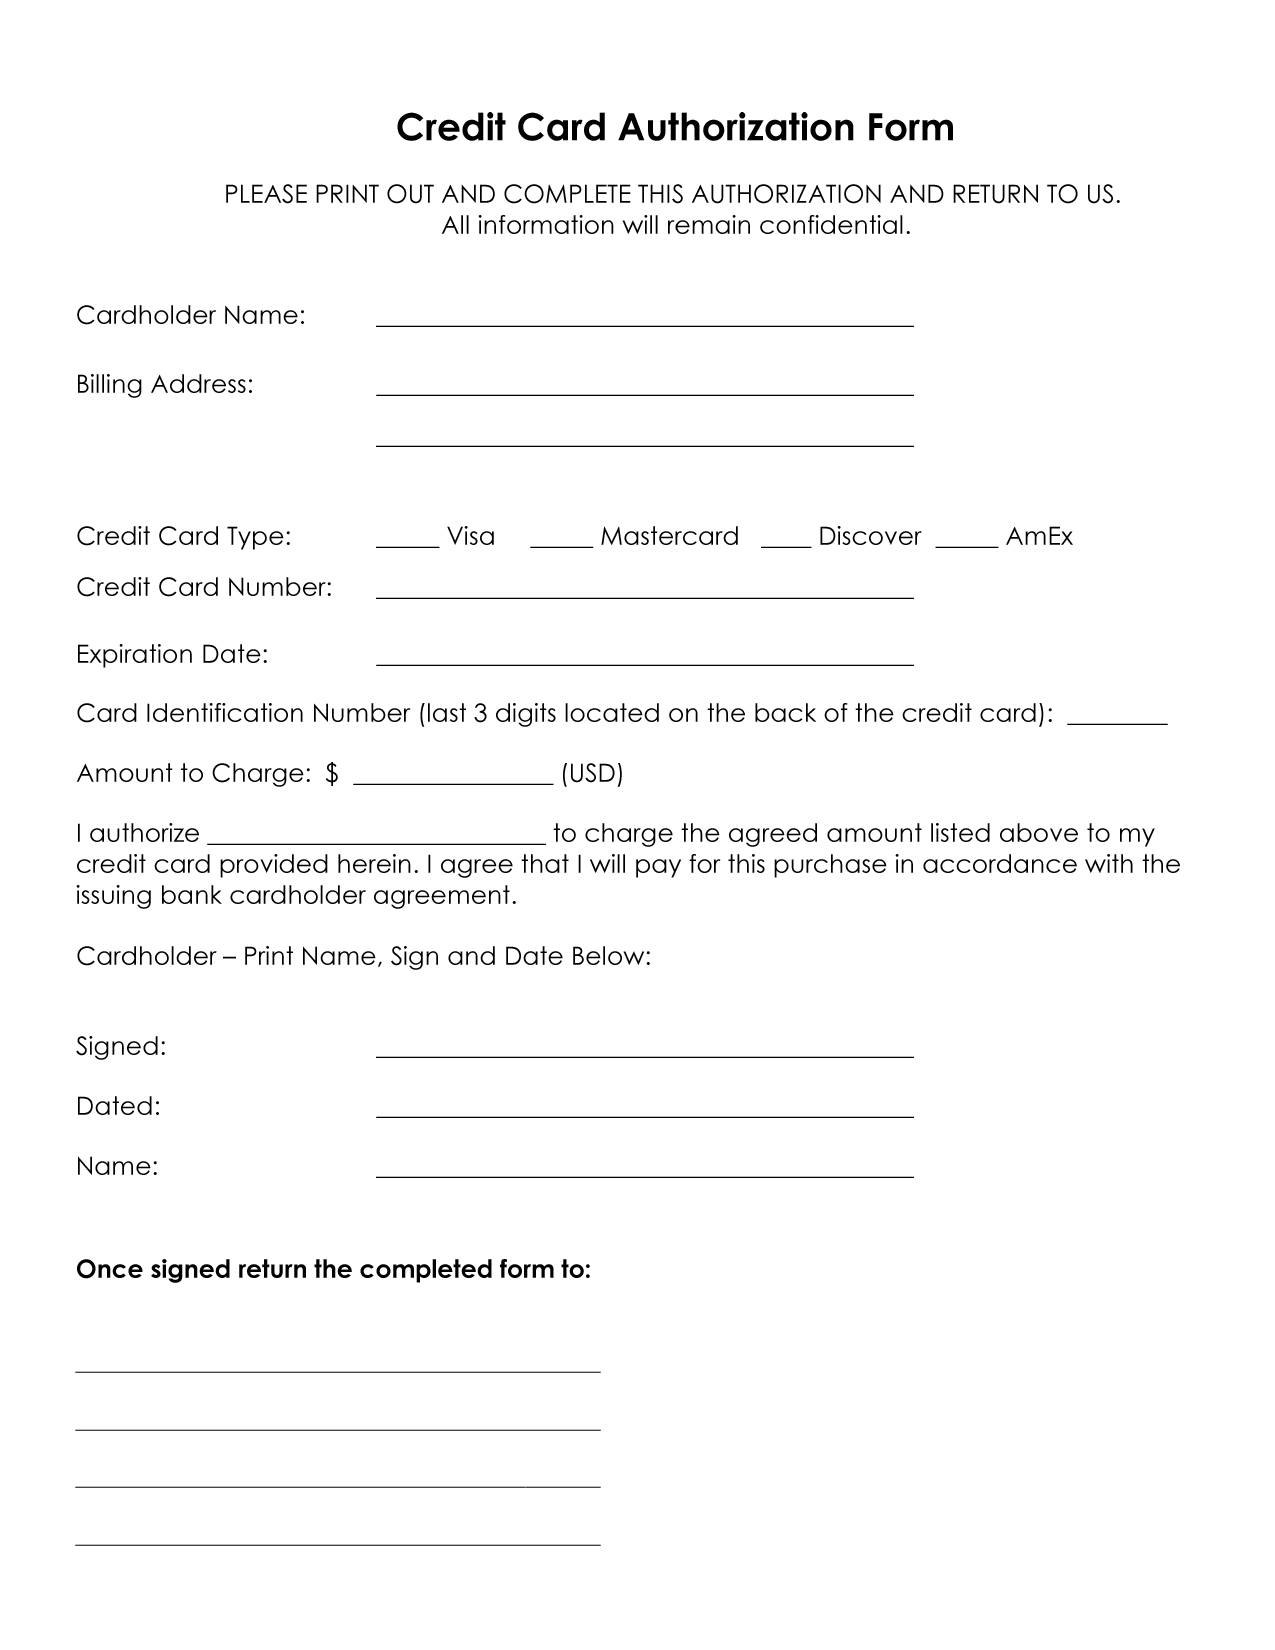 Credit Card Authorization Form Template Download Pdf Word Within Authorization To Charge Credit Card Template